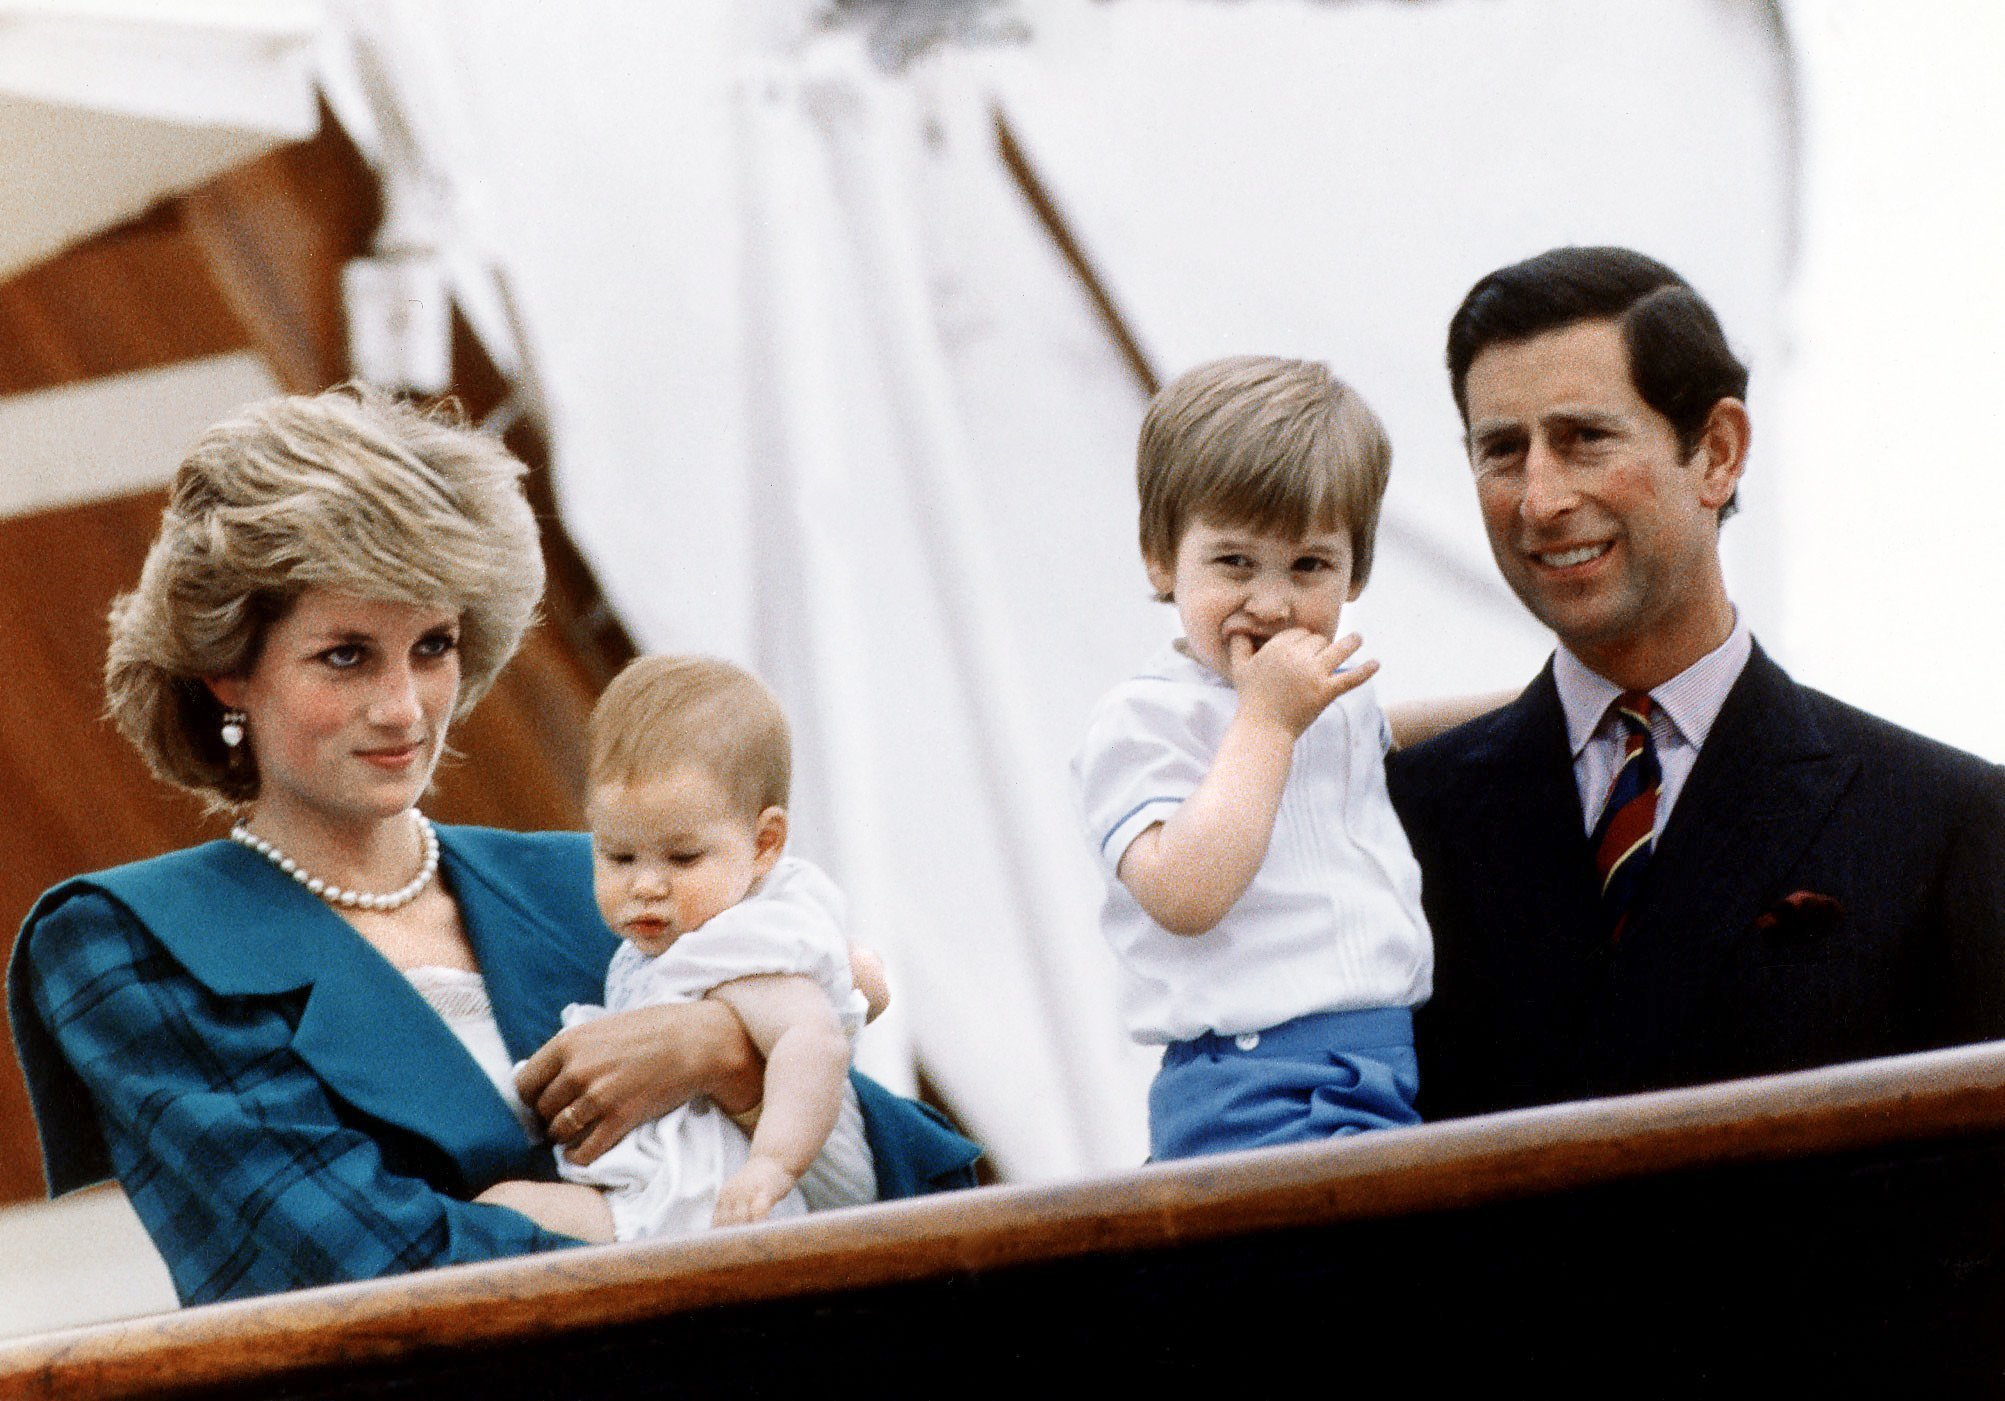 Princess Diana and Prince Charles pose with their sons Princes Harry and William on board royal yacht Britannia during their visit to Venice, Italy, 6th May 1985   Getty Images